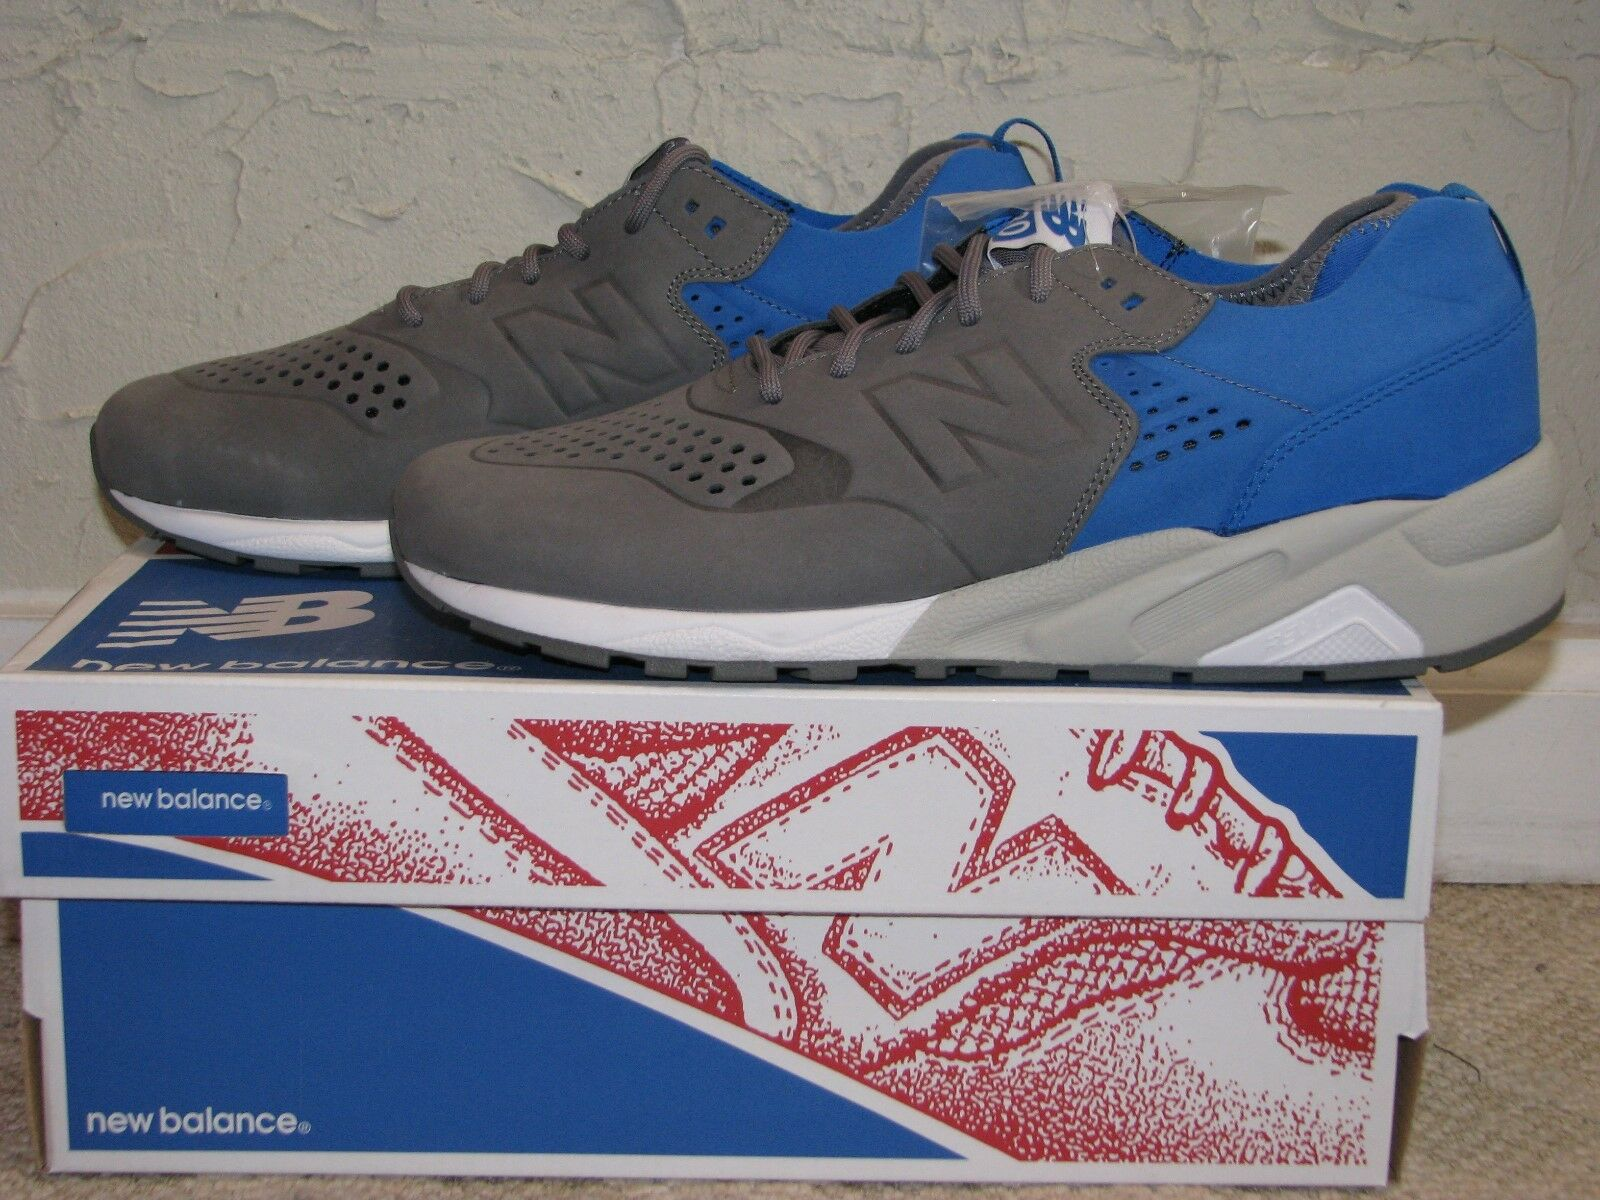 6b836a044637 Colette x New Balance Balance Balance MRT580D5 Grey   Blue Mens Size 10 DS  NEW!